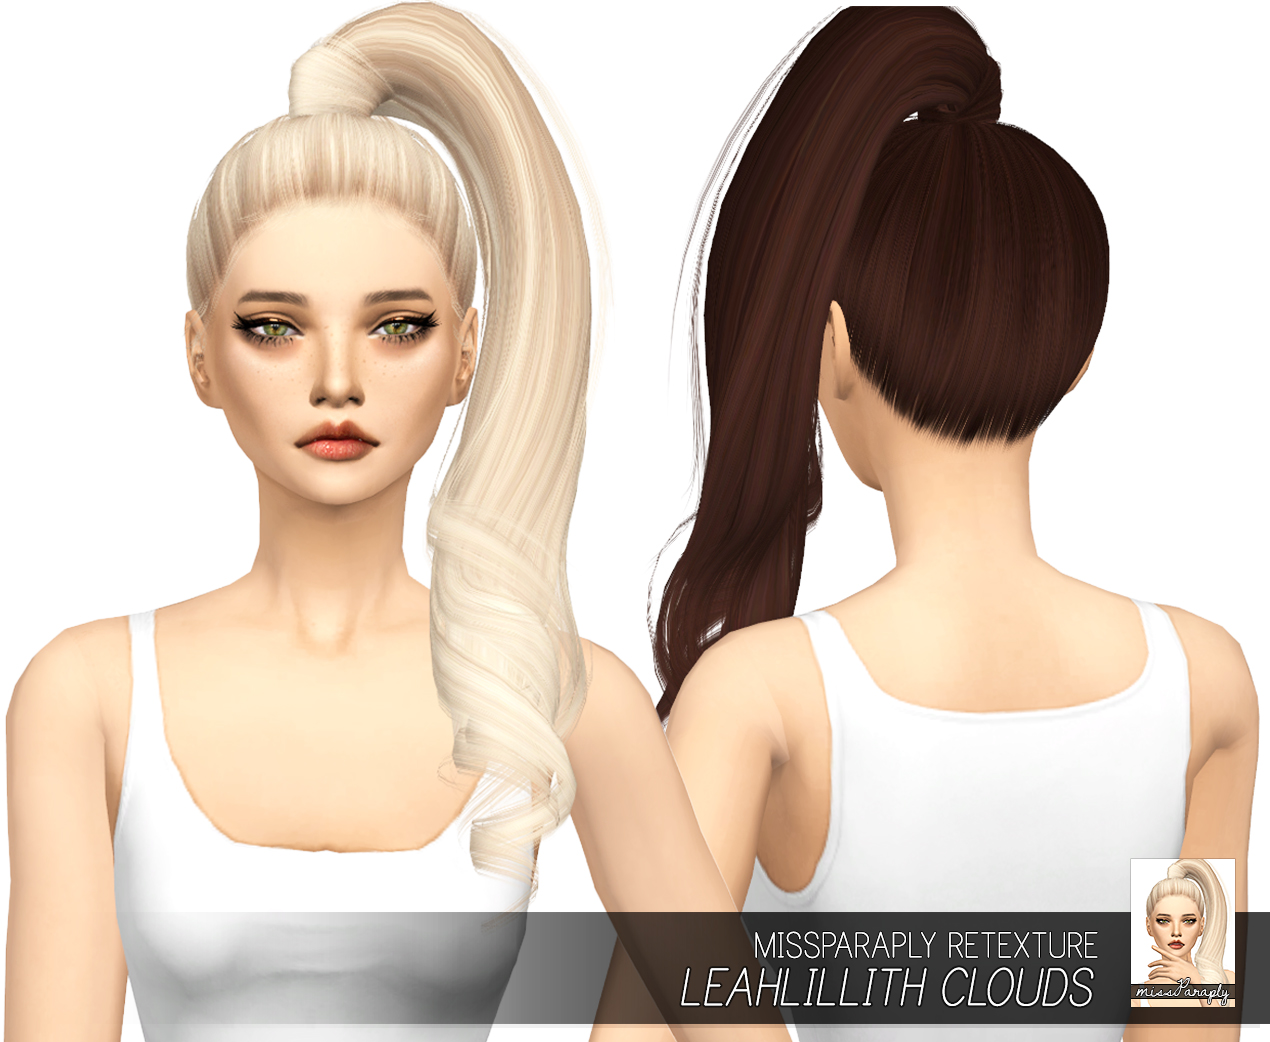 how to get rid of hair glitch on sims 4